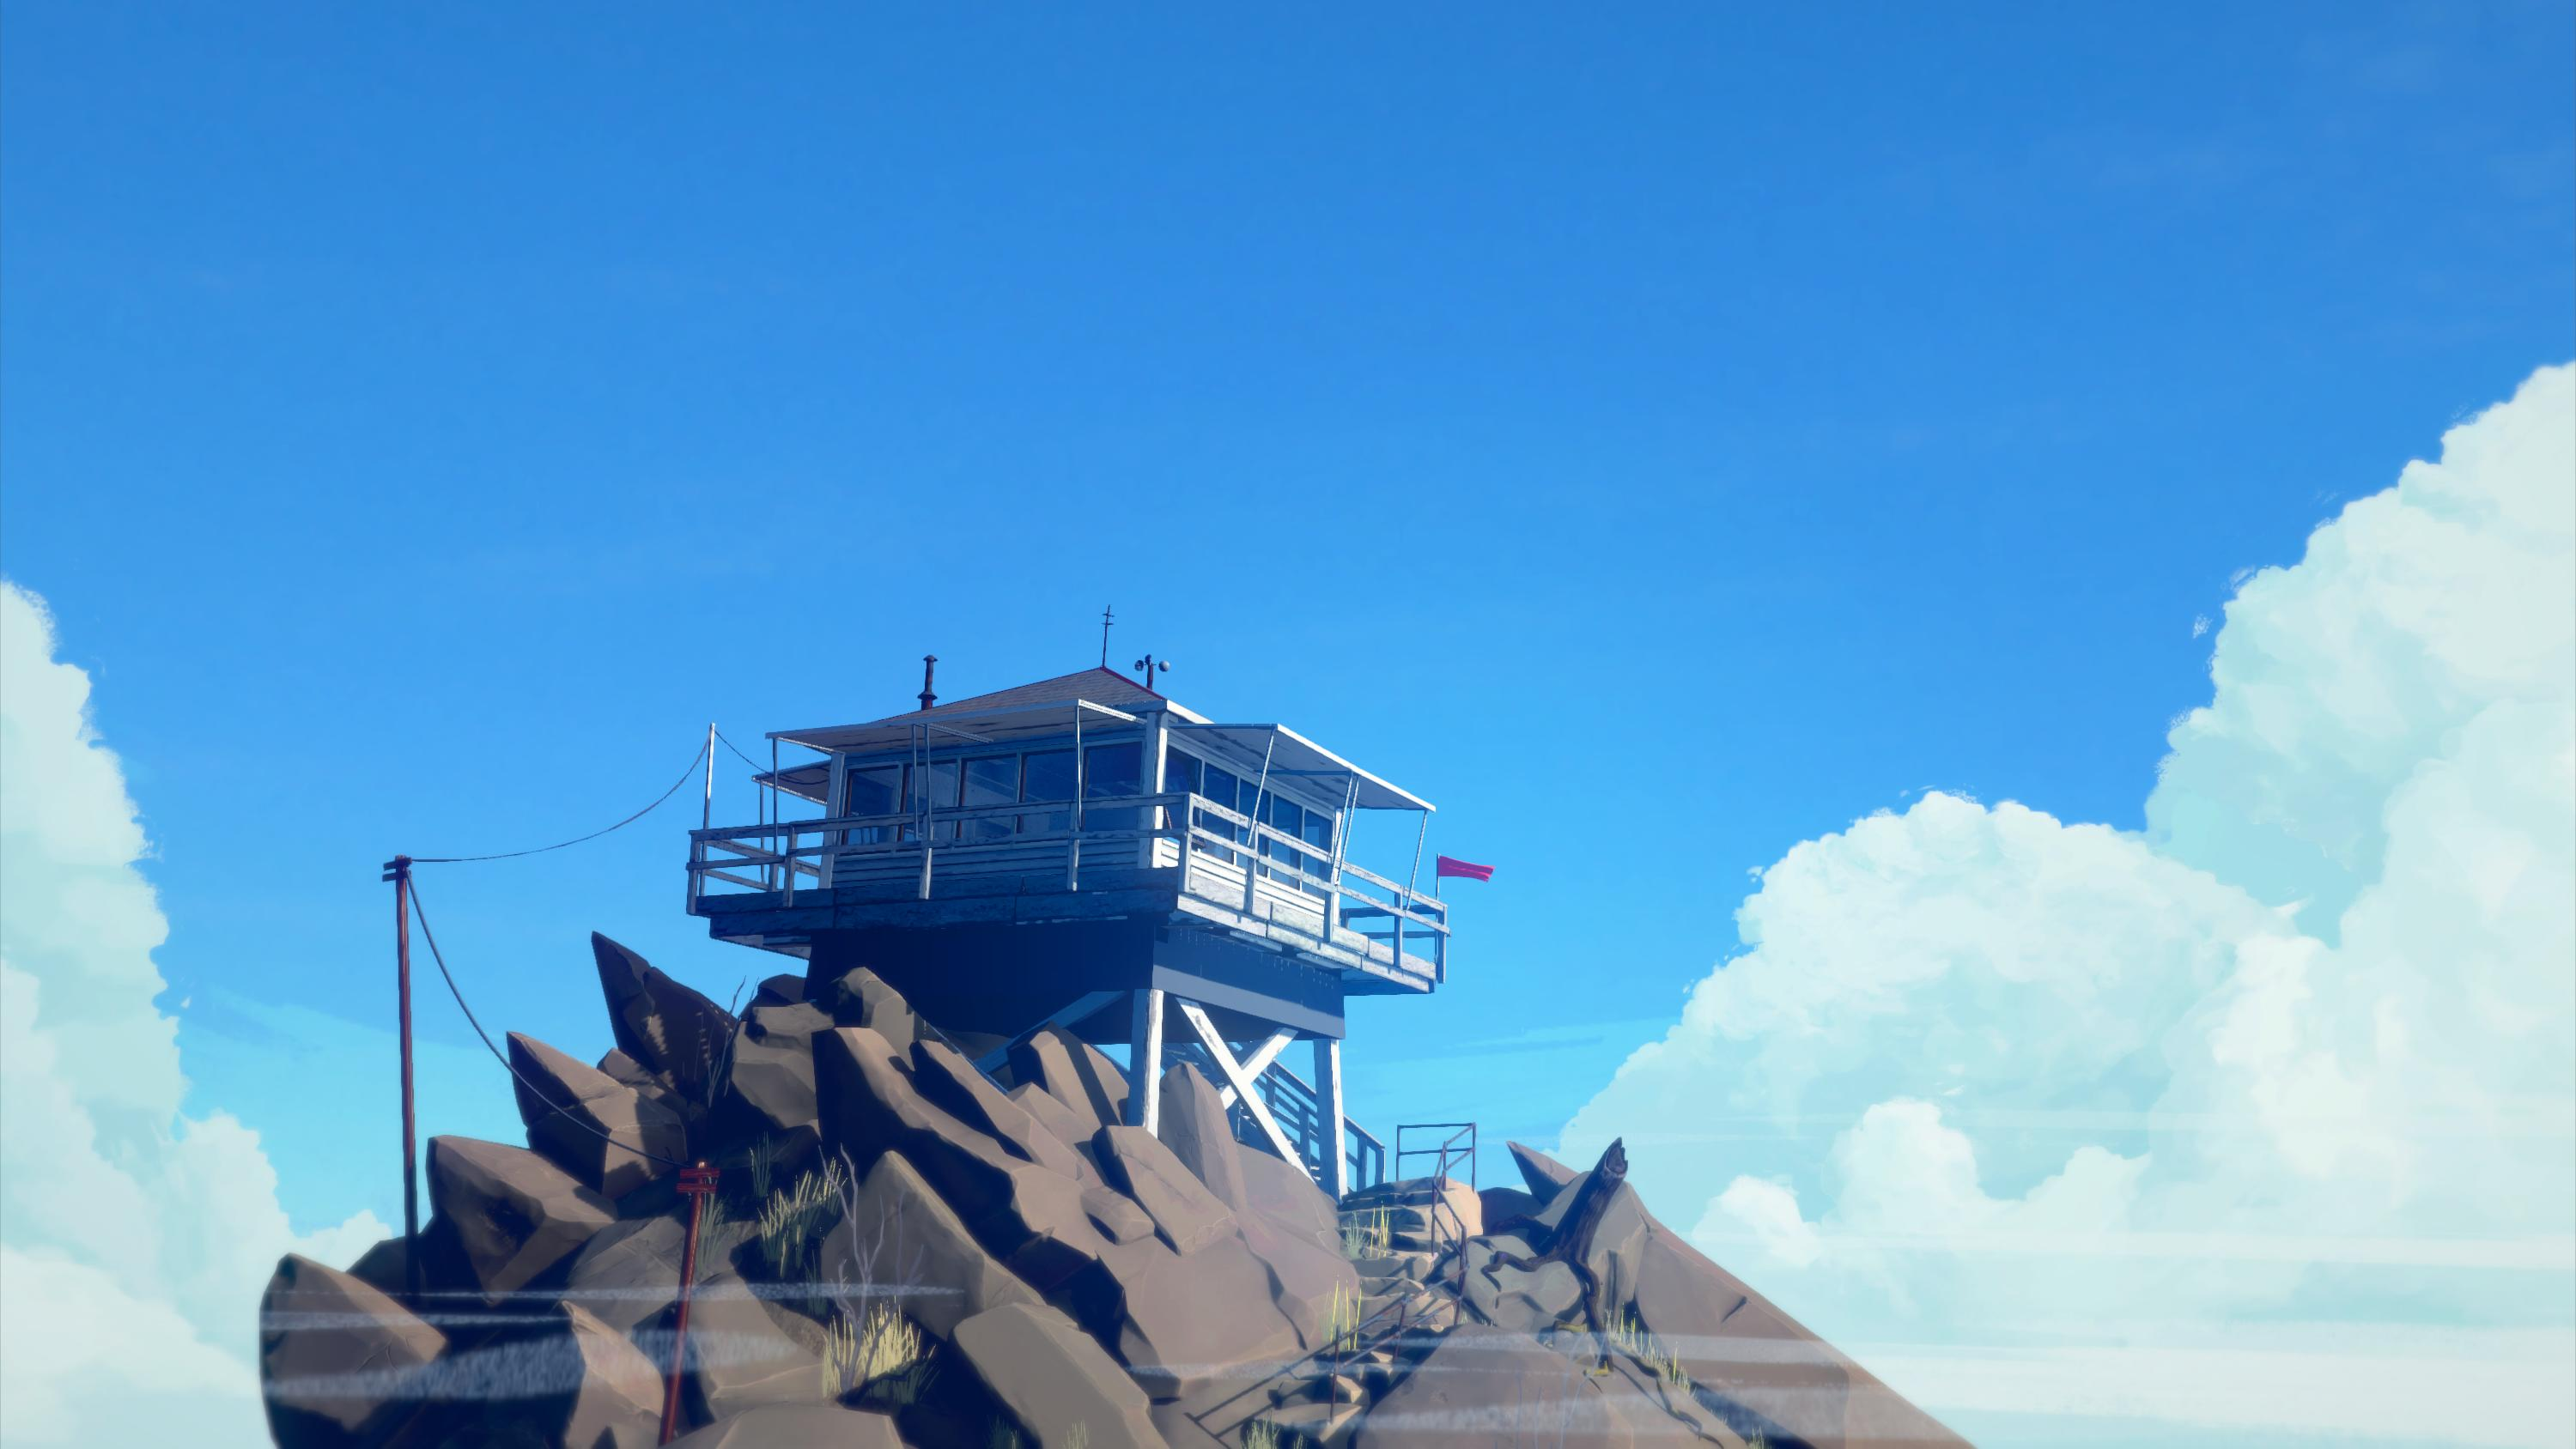 Firewatch review: a game that perfectly captures the beauty and terror of nature